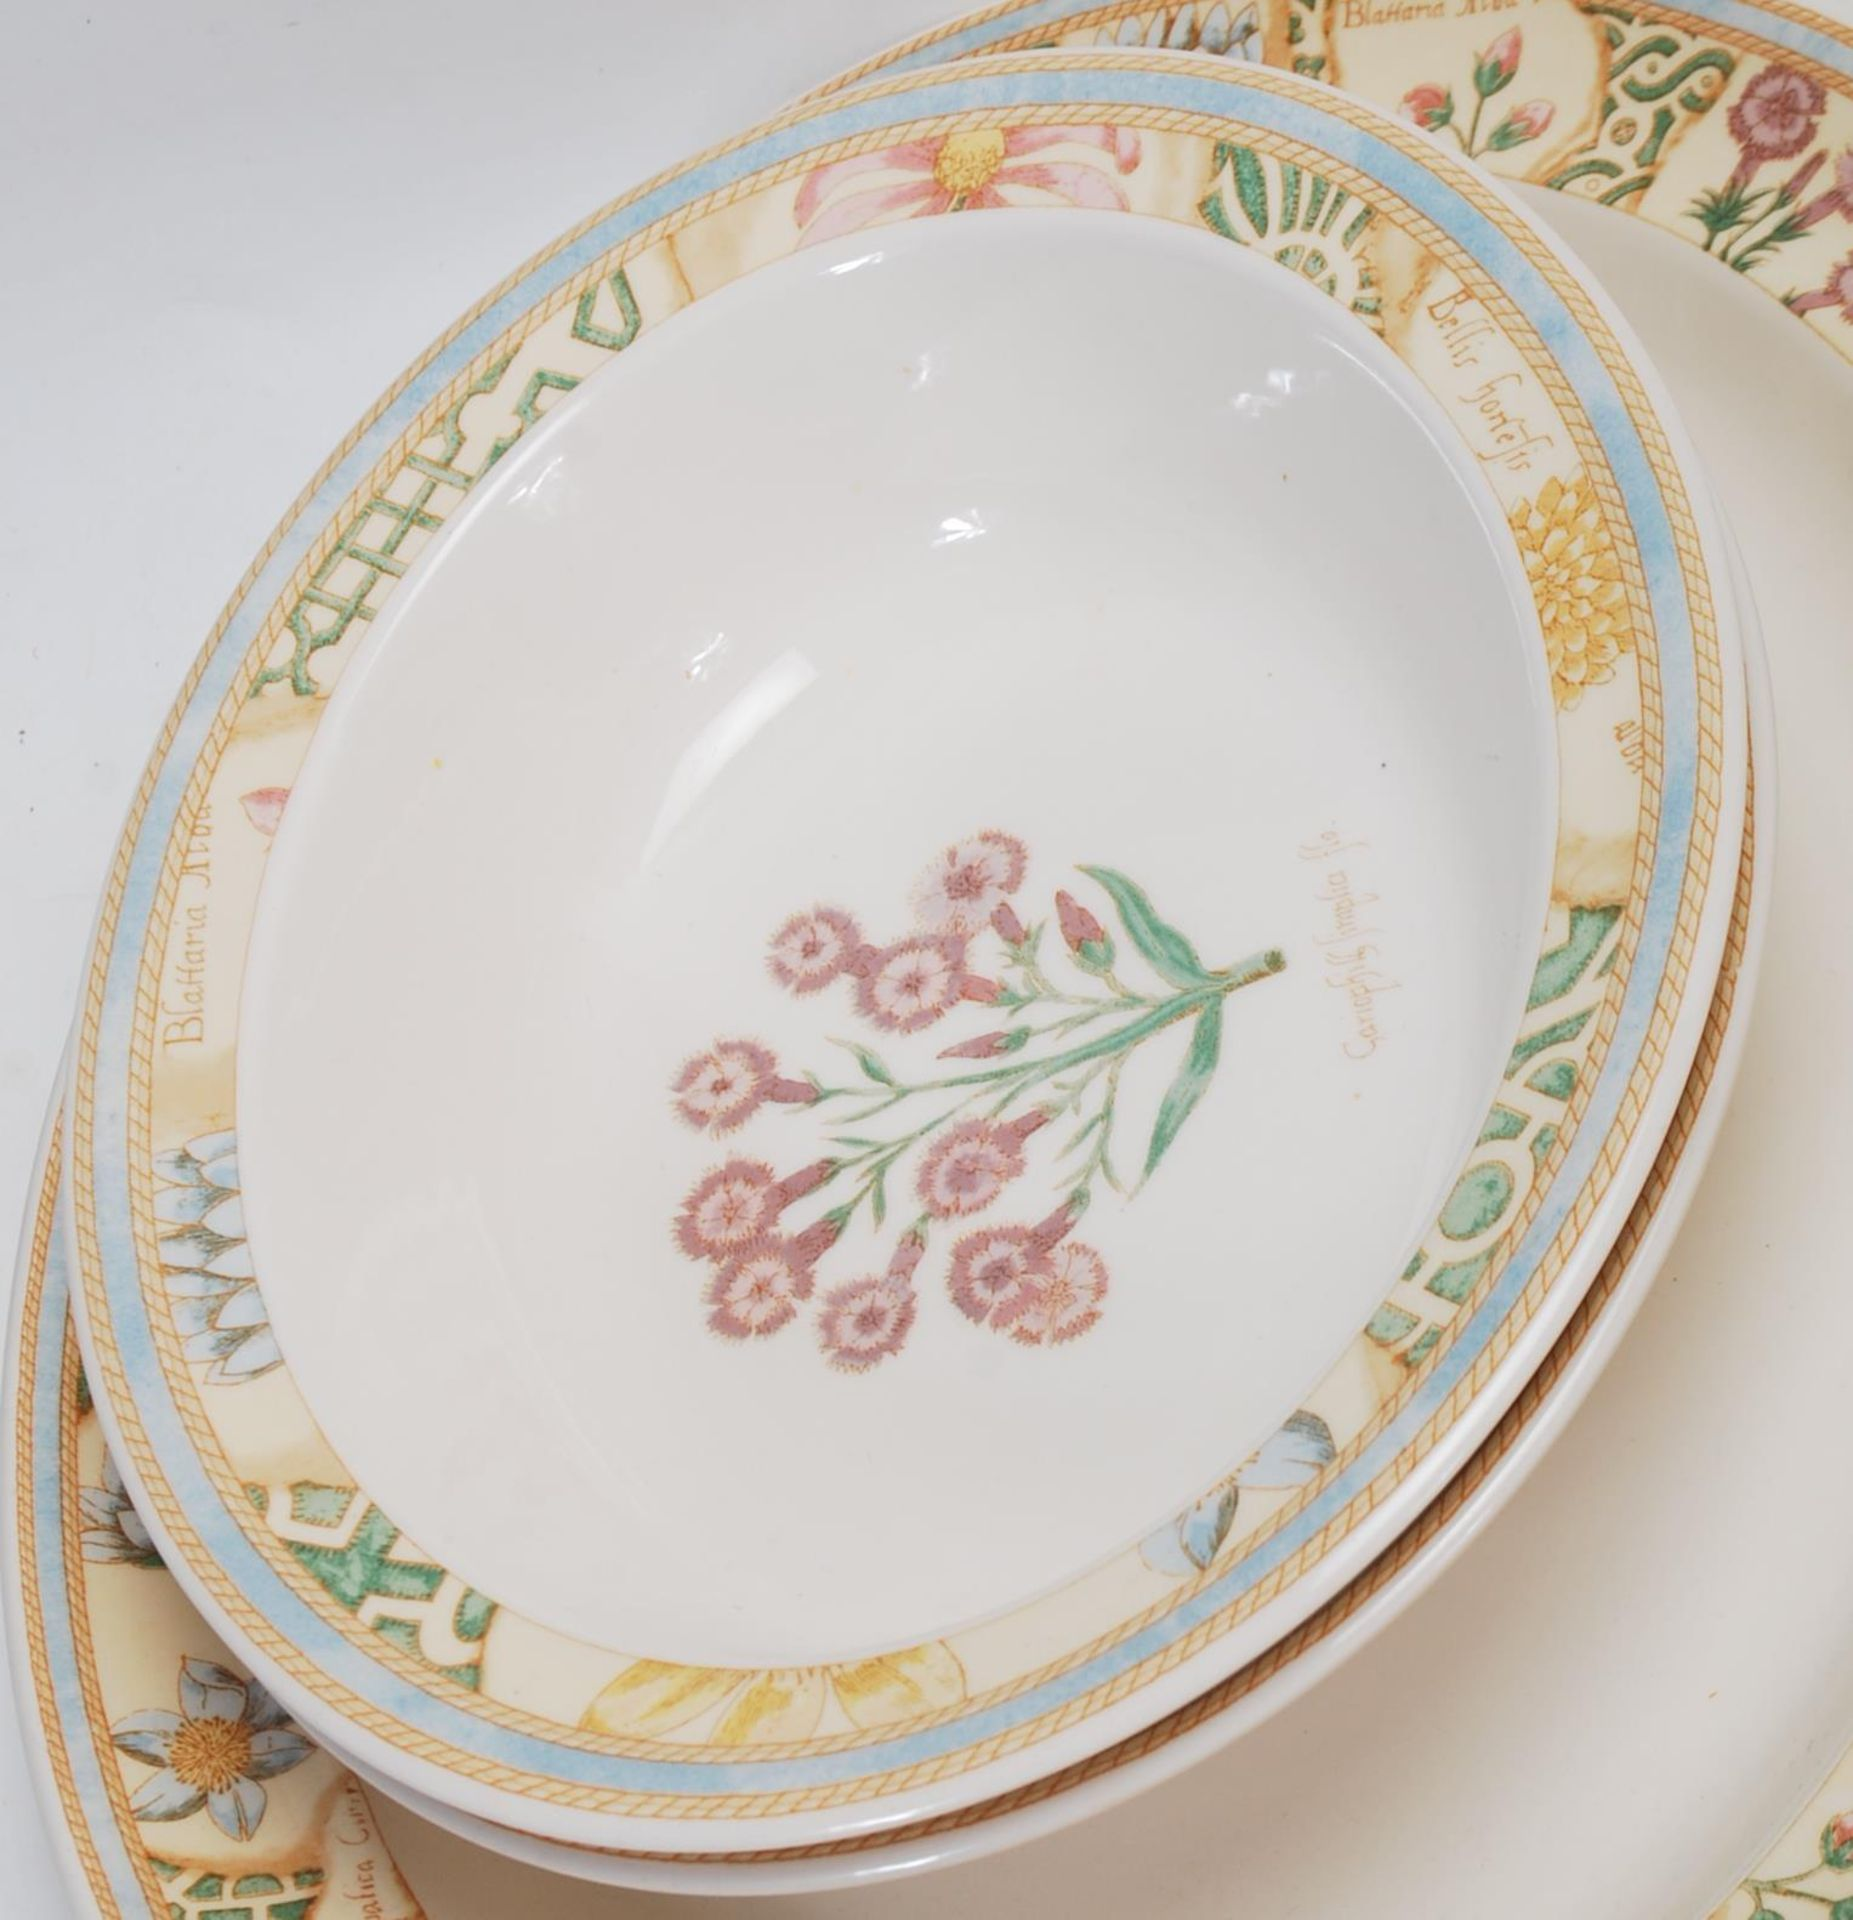 A LARGE 20TH CENTURY WEDGWOOD DINNER SERVICE WITH GRDEN MAZE PATTERN - Image 9 of 11